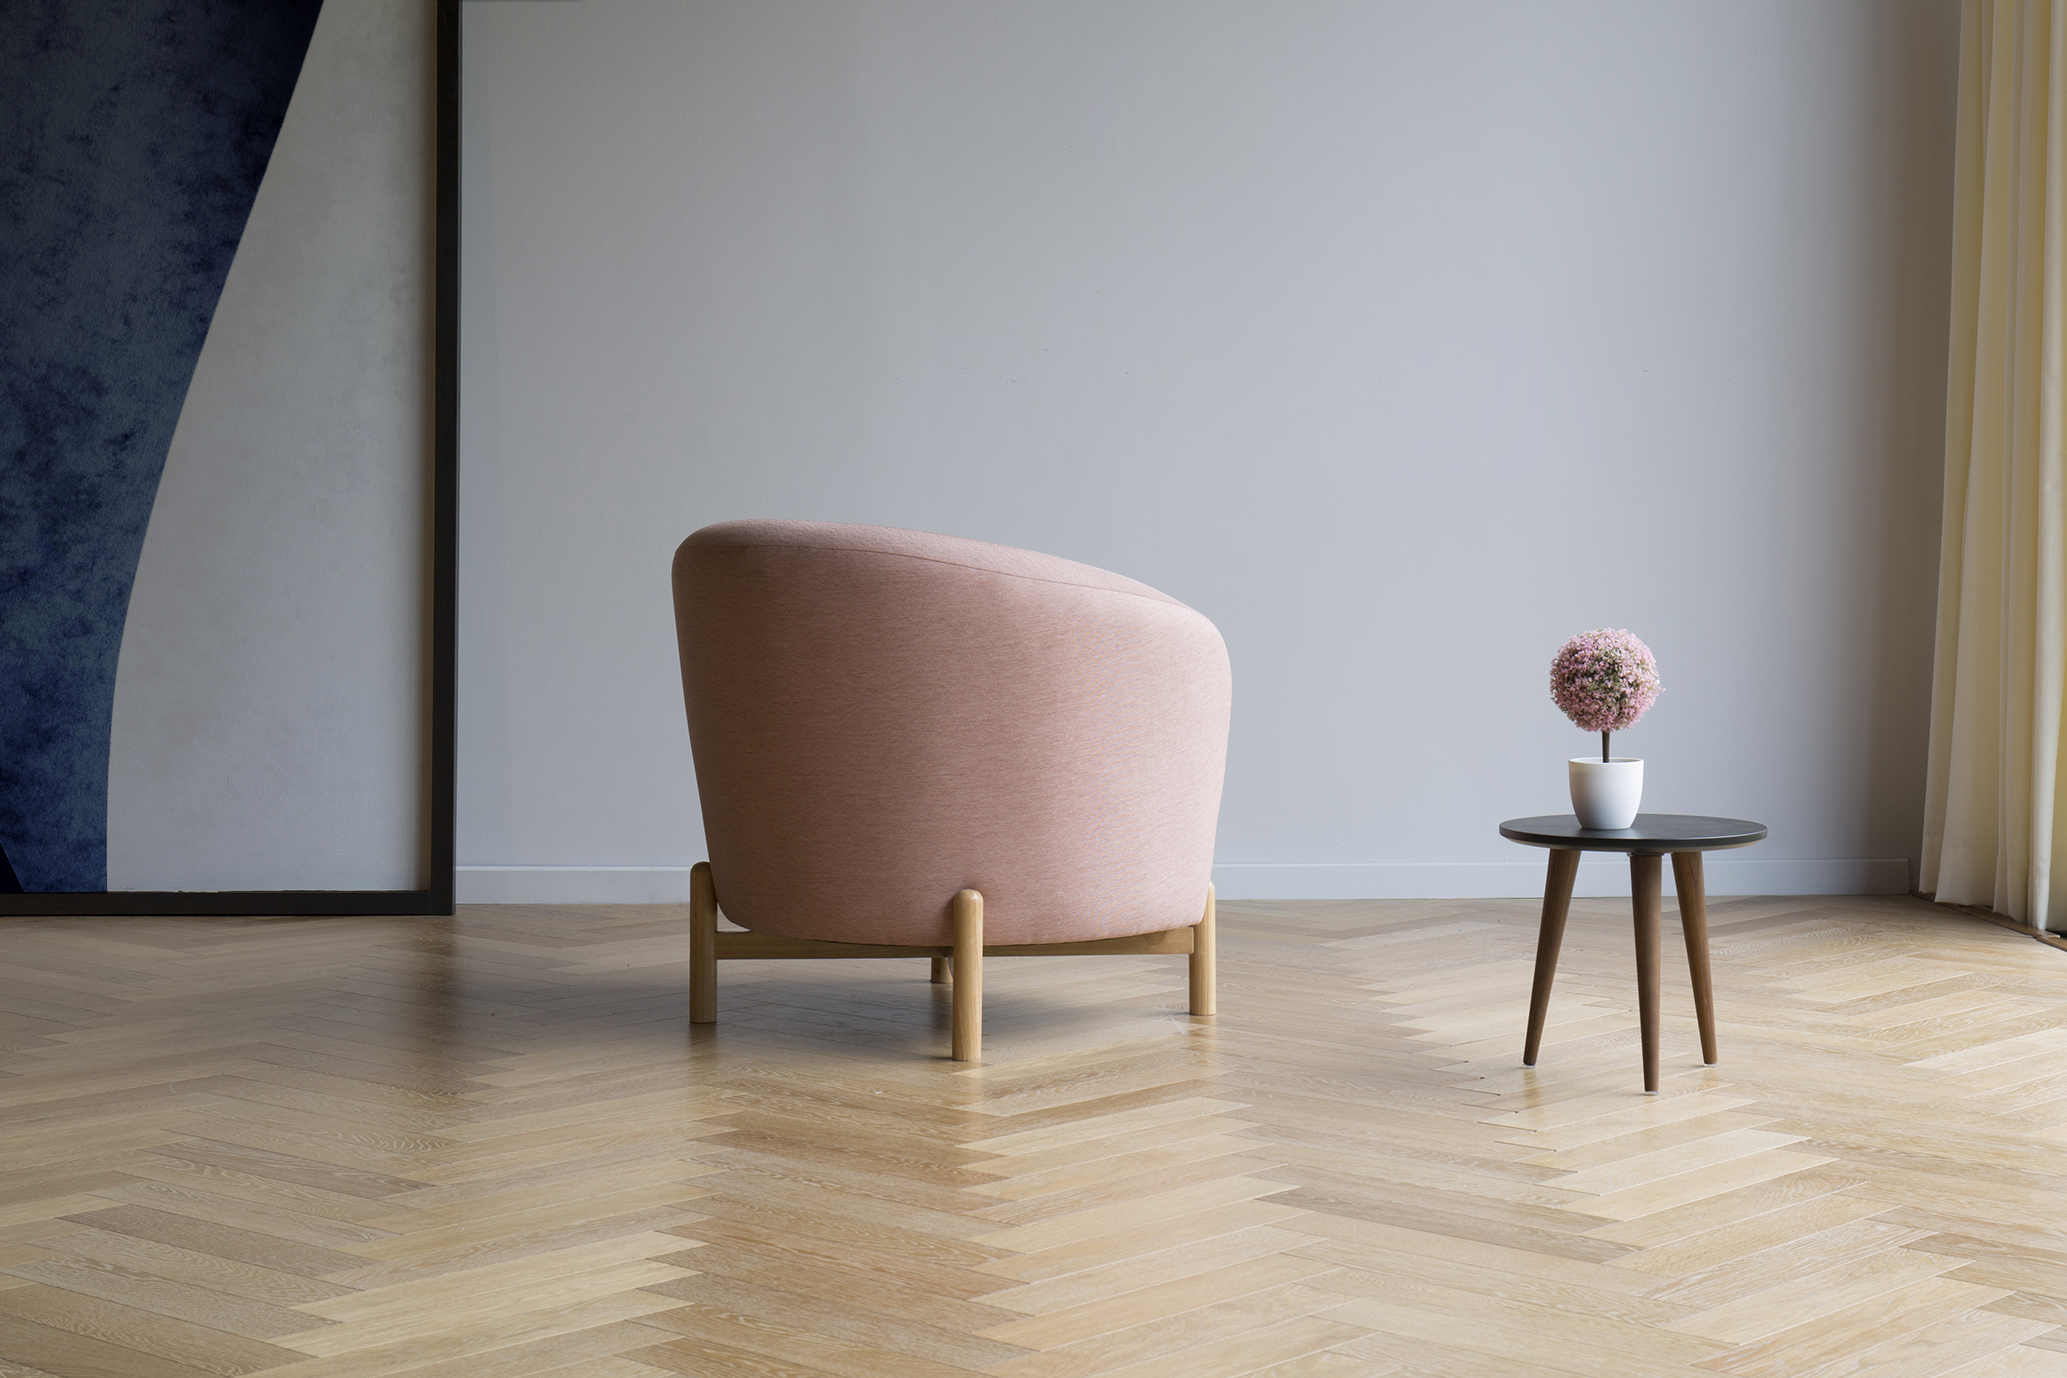 Esby-chair-oliver-lukas-weisskrogh-5.jpg